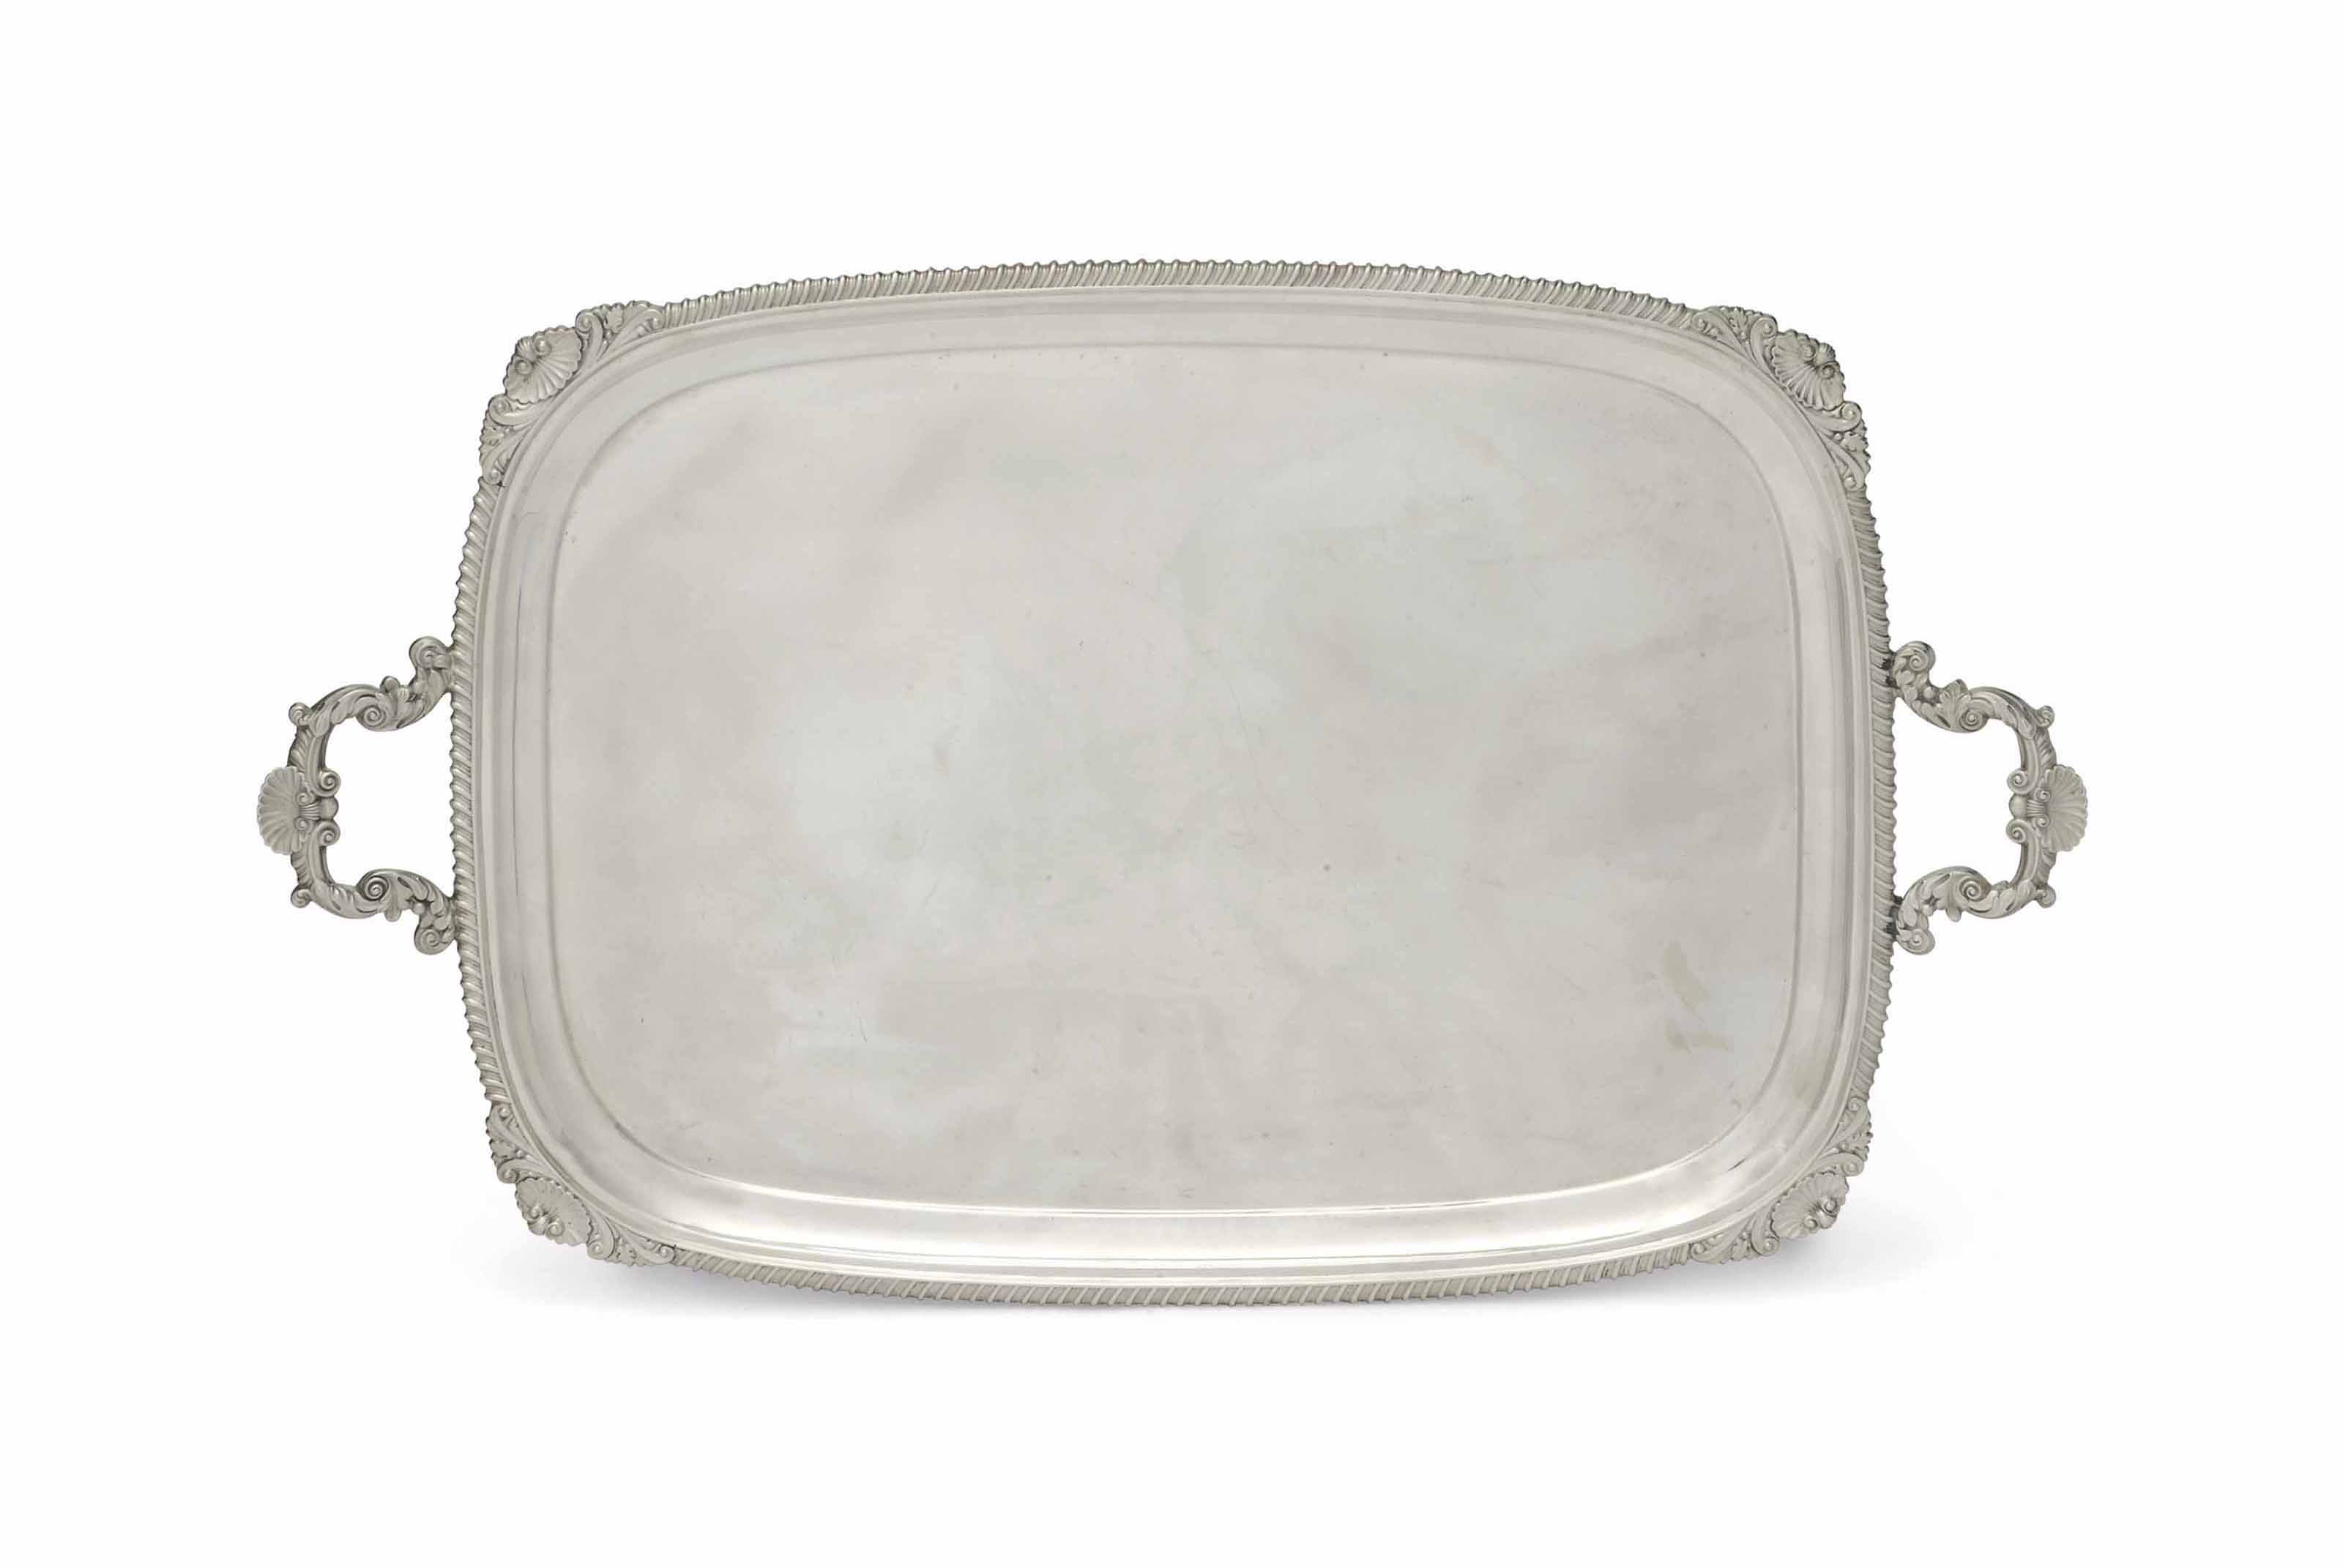 A LARGE EDWARDIAN PLAIN OBLONG SILVER TRAY